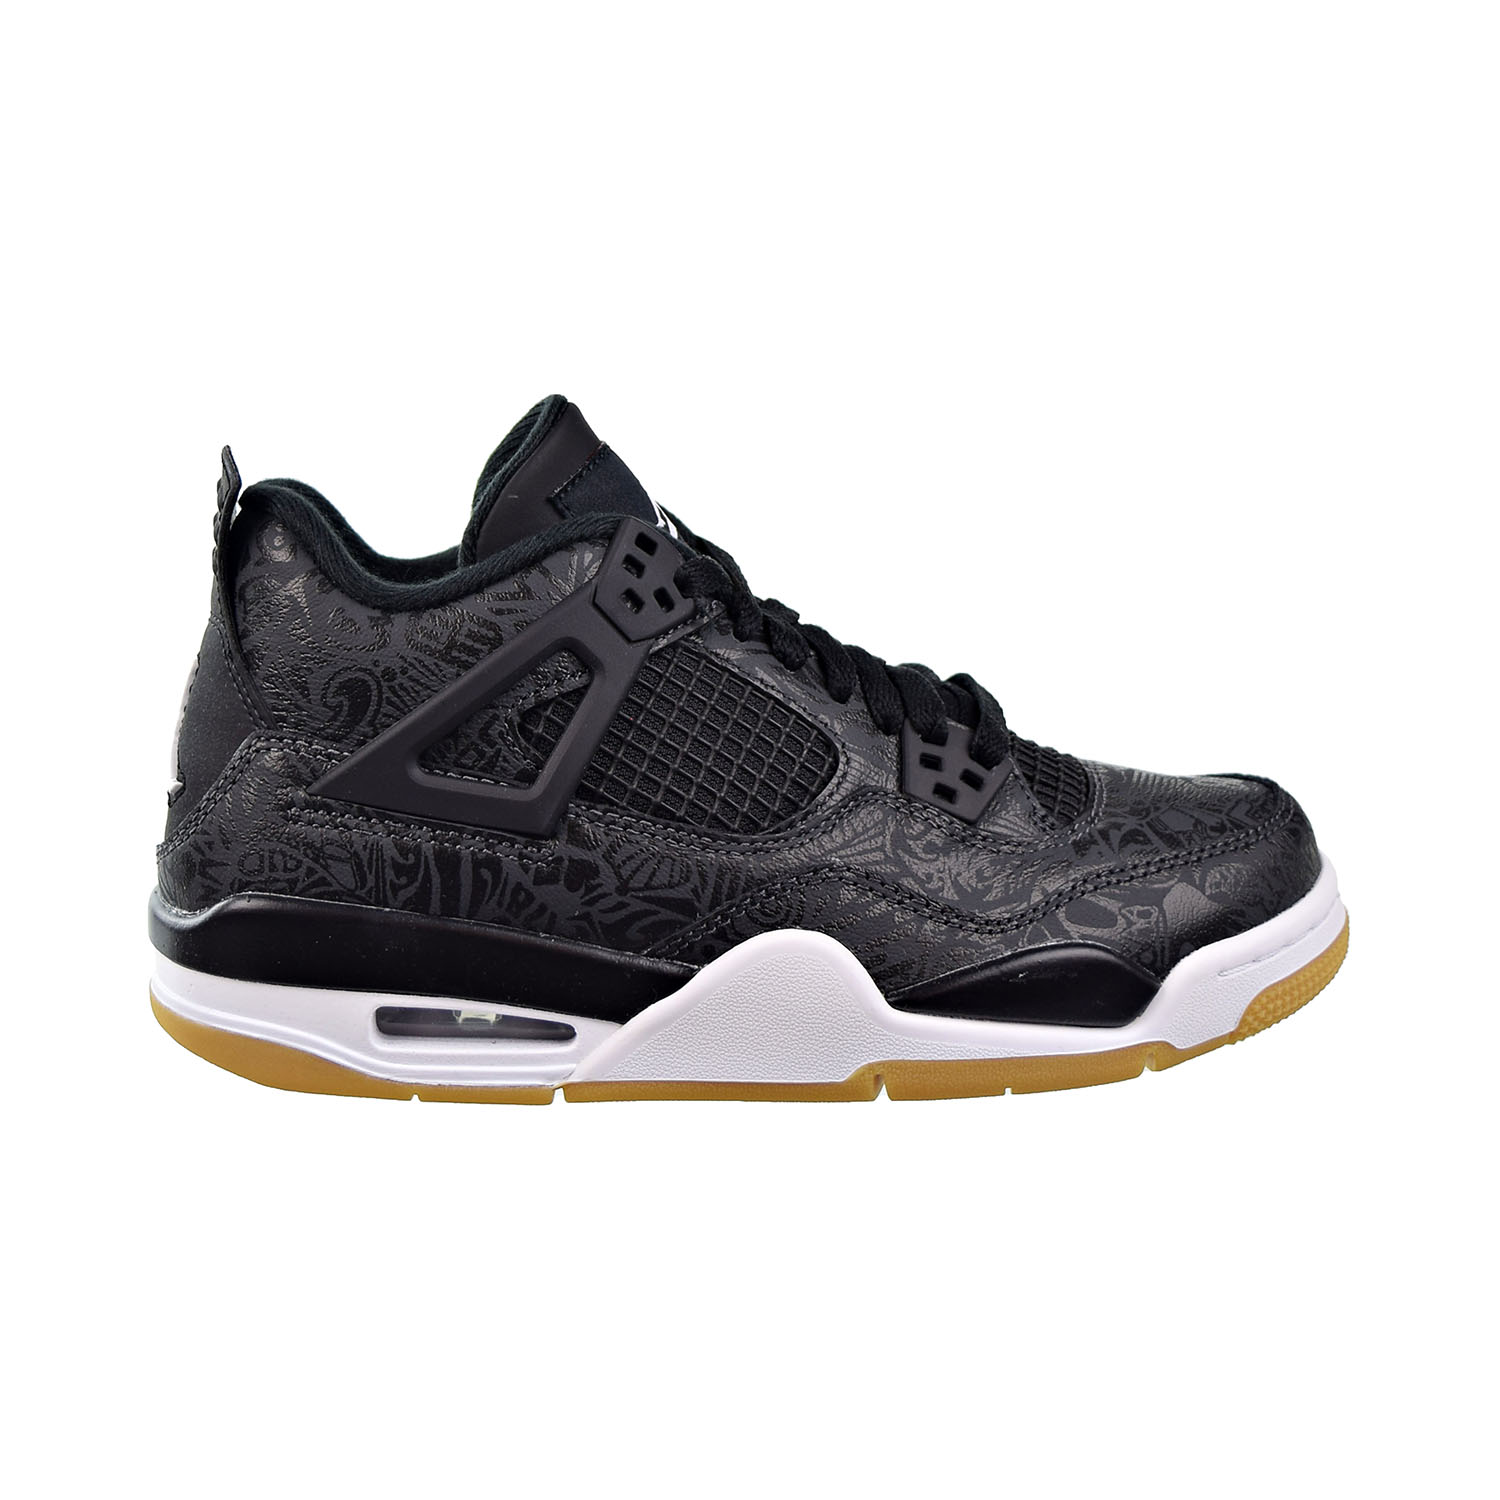 buy cheap a584e ea993 Details about Air Jordan 4 Retro SE (GS) Big Kids Shoes Black/White  Gum/Light Brown CI2970-001